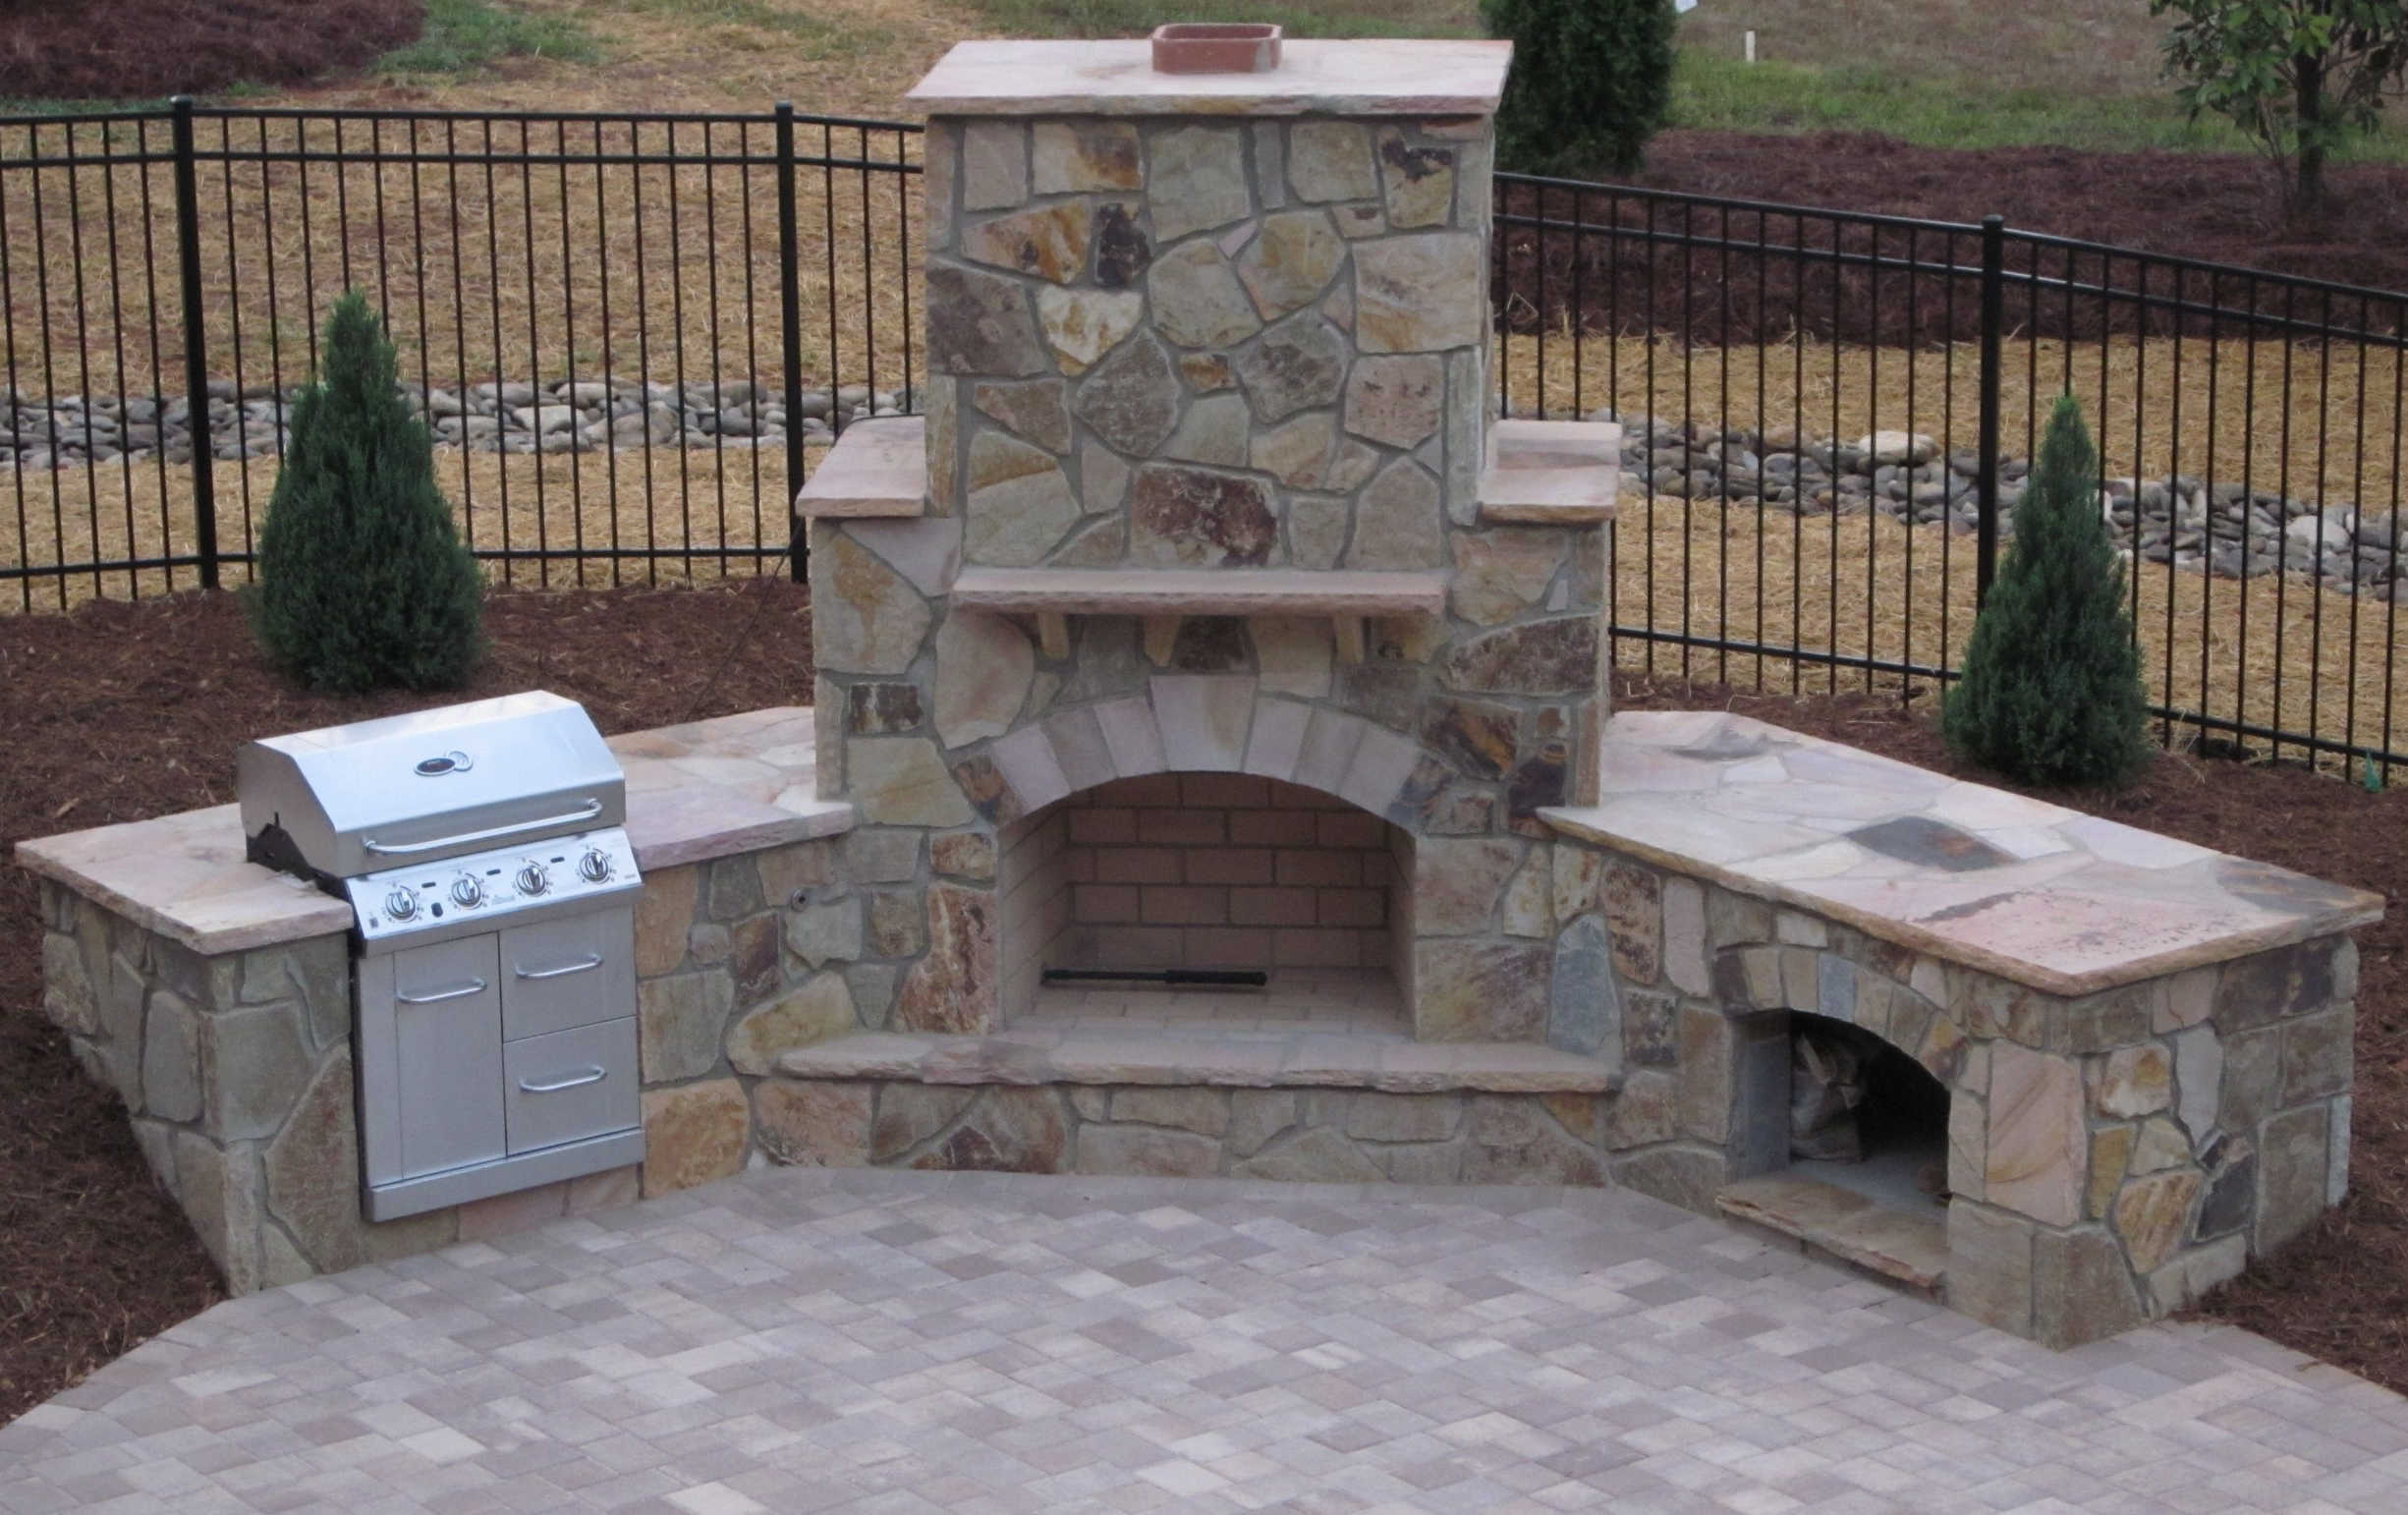 How to build an outdoor fireplace step by step guide for Building a corner fireplace